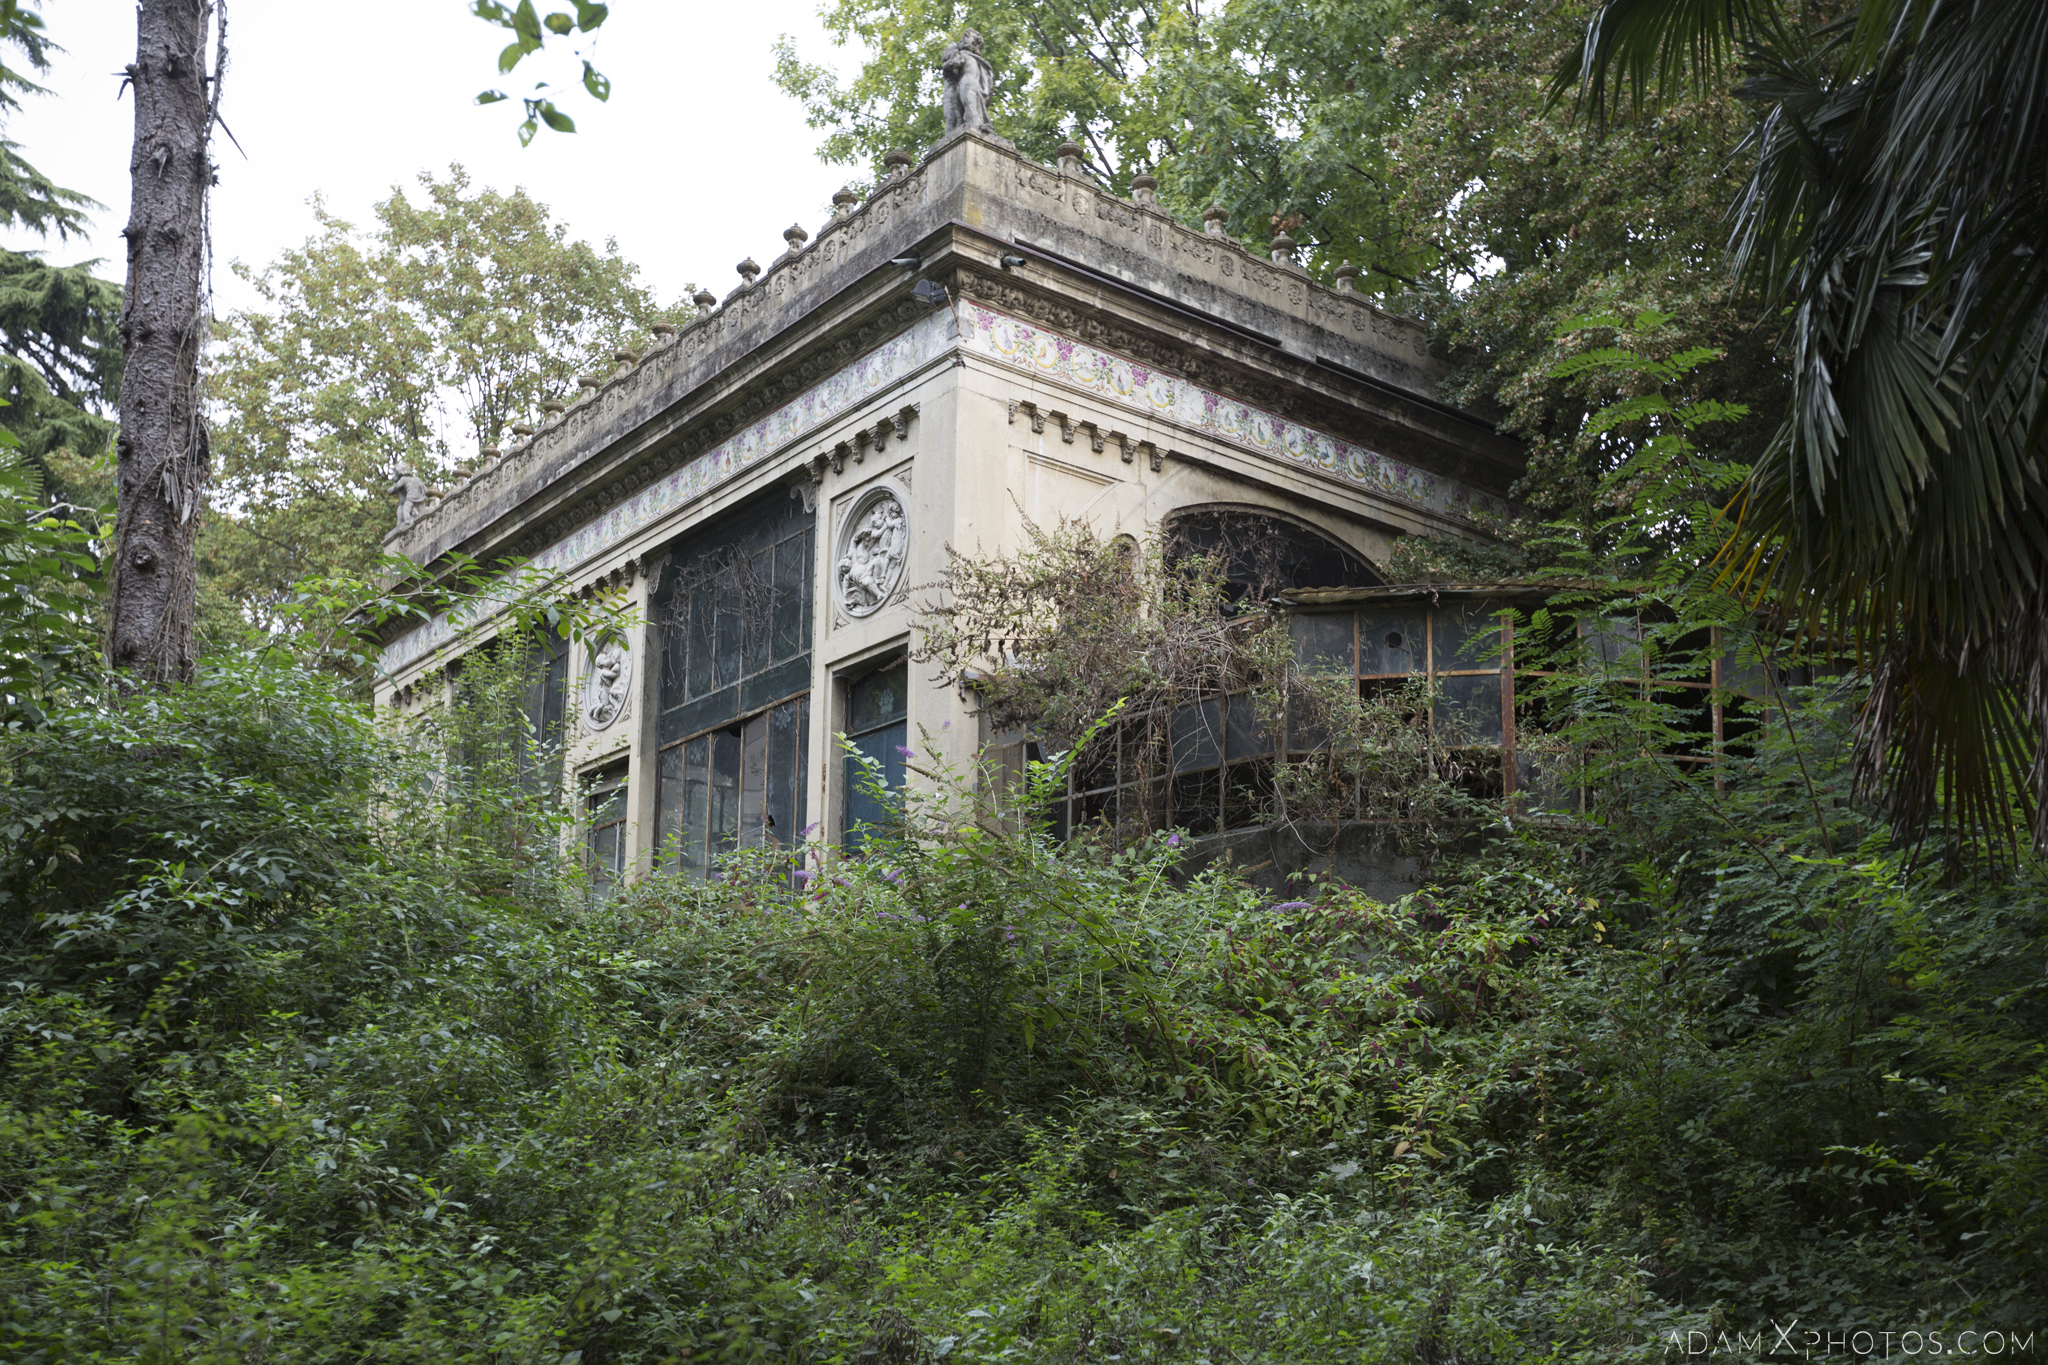 External Exterior Outside Greenhouse Orangery Garden summer House ornate windows rockery Villa Pesenti P Urbex Adam X Urban Exploration Italy Italia Access 2016 Abandoned decay lost forgotten derelict location creepy haunting eerie